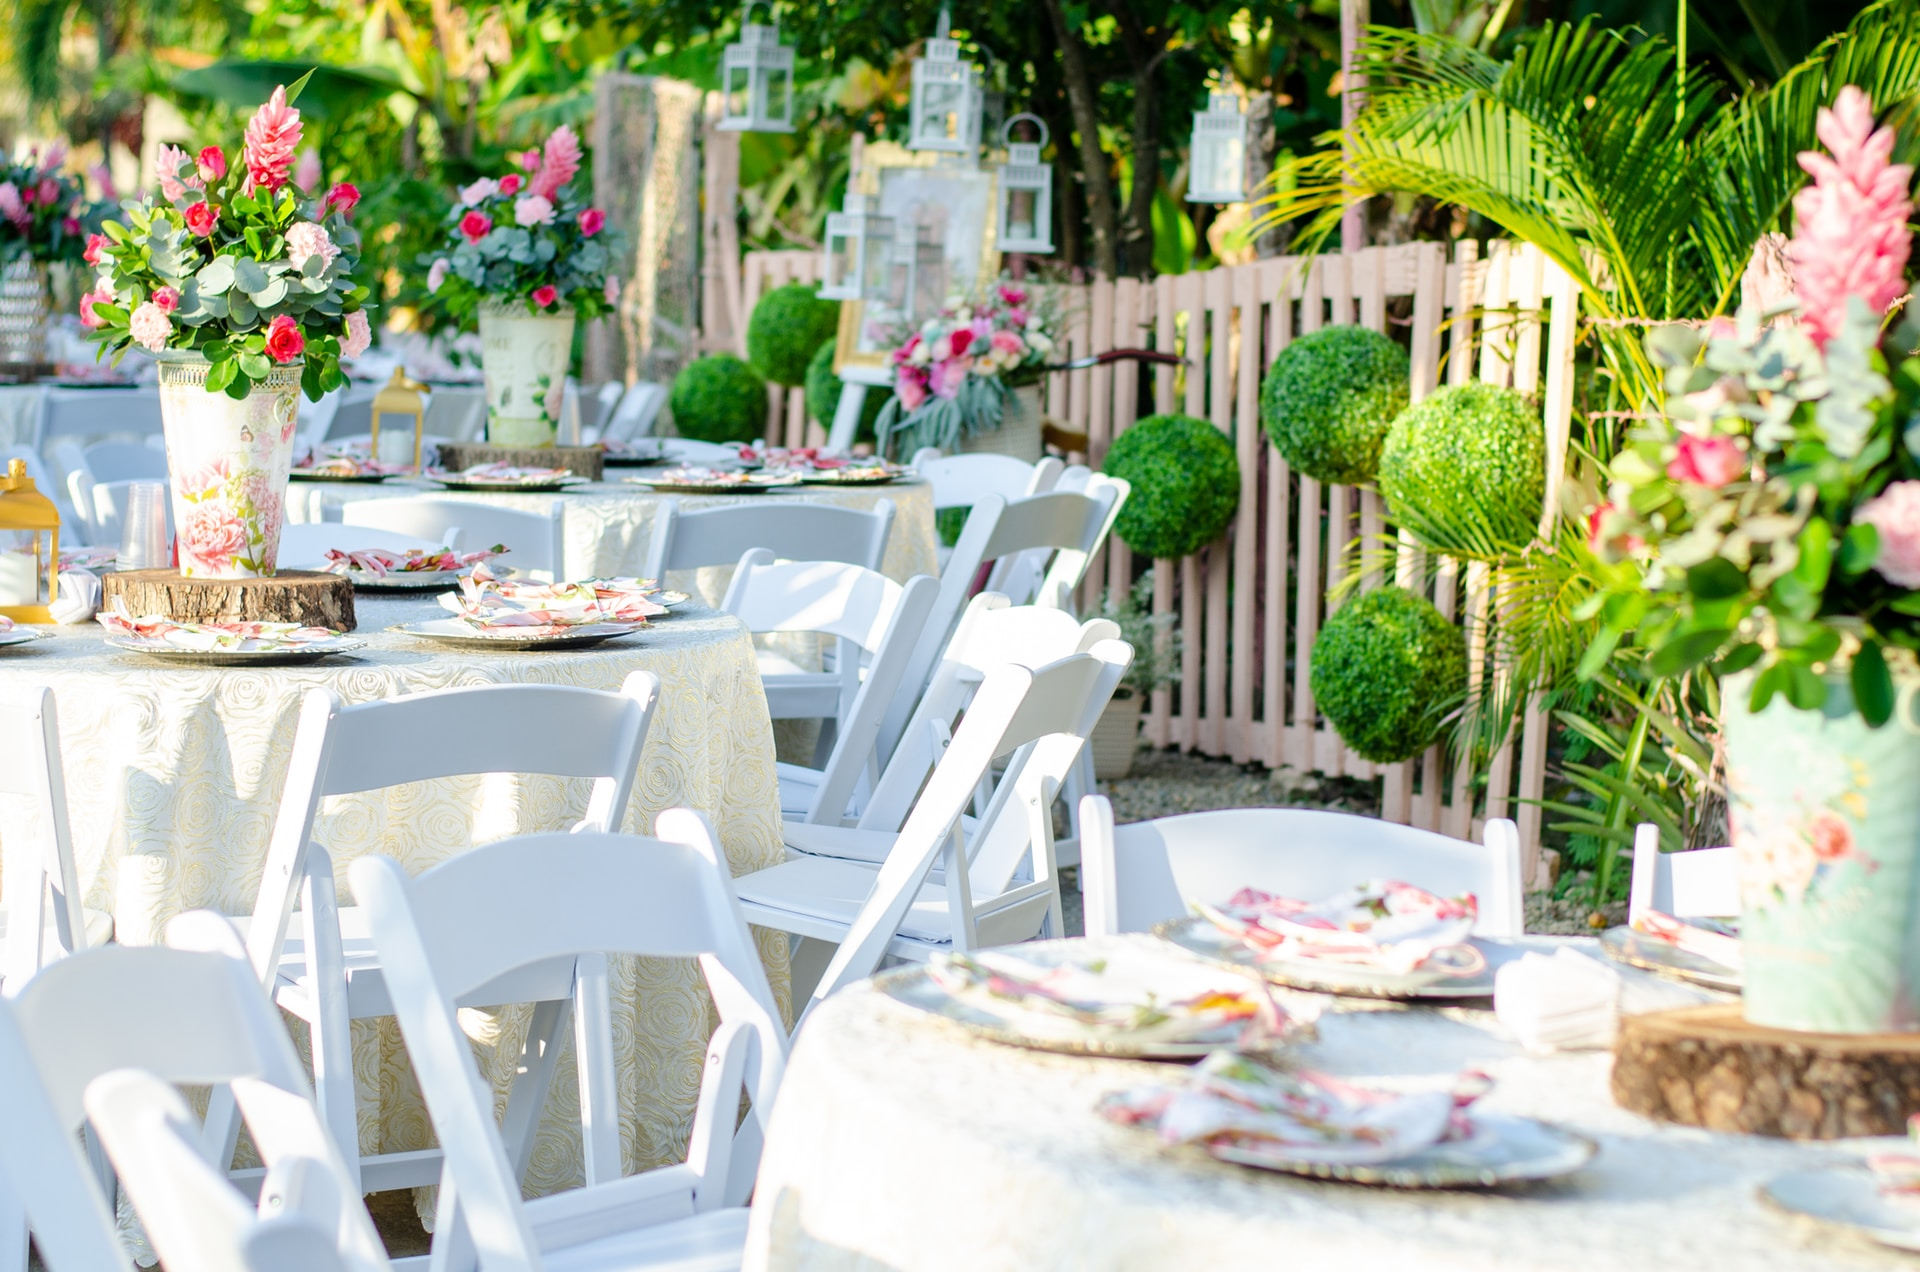 Outdoor Dining image